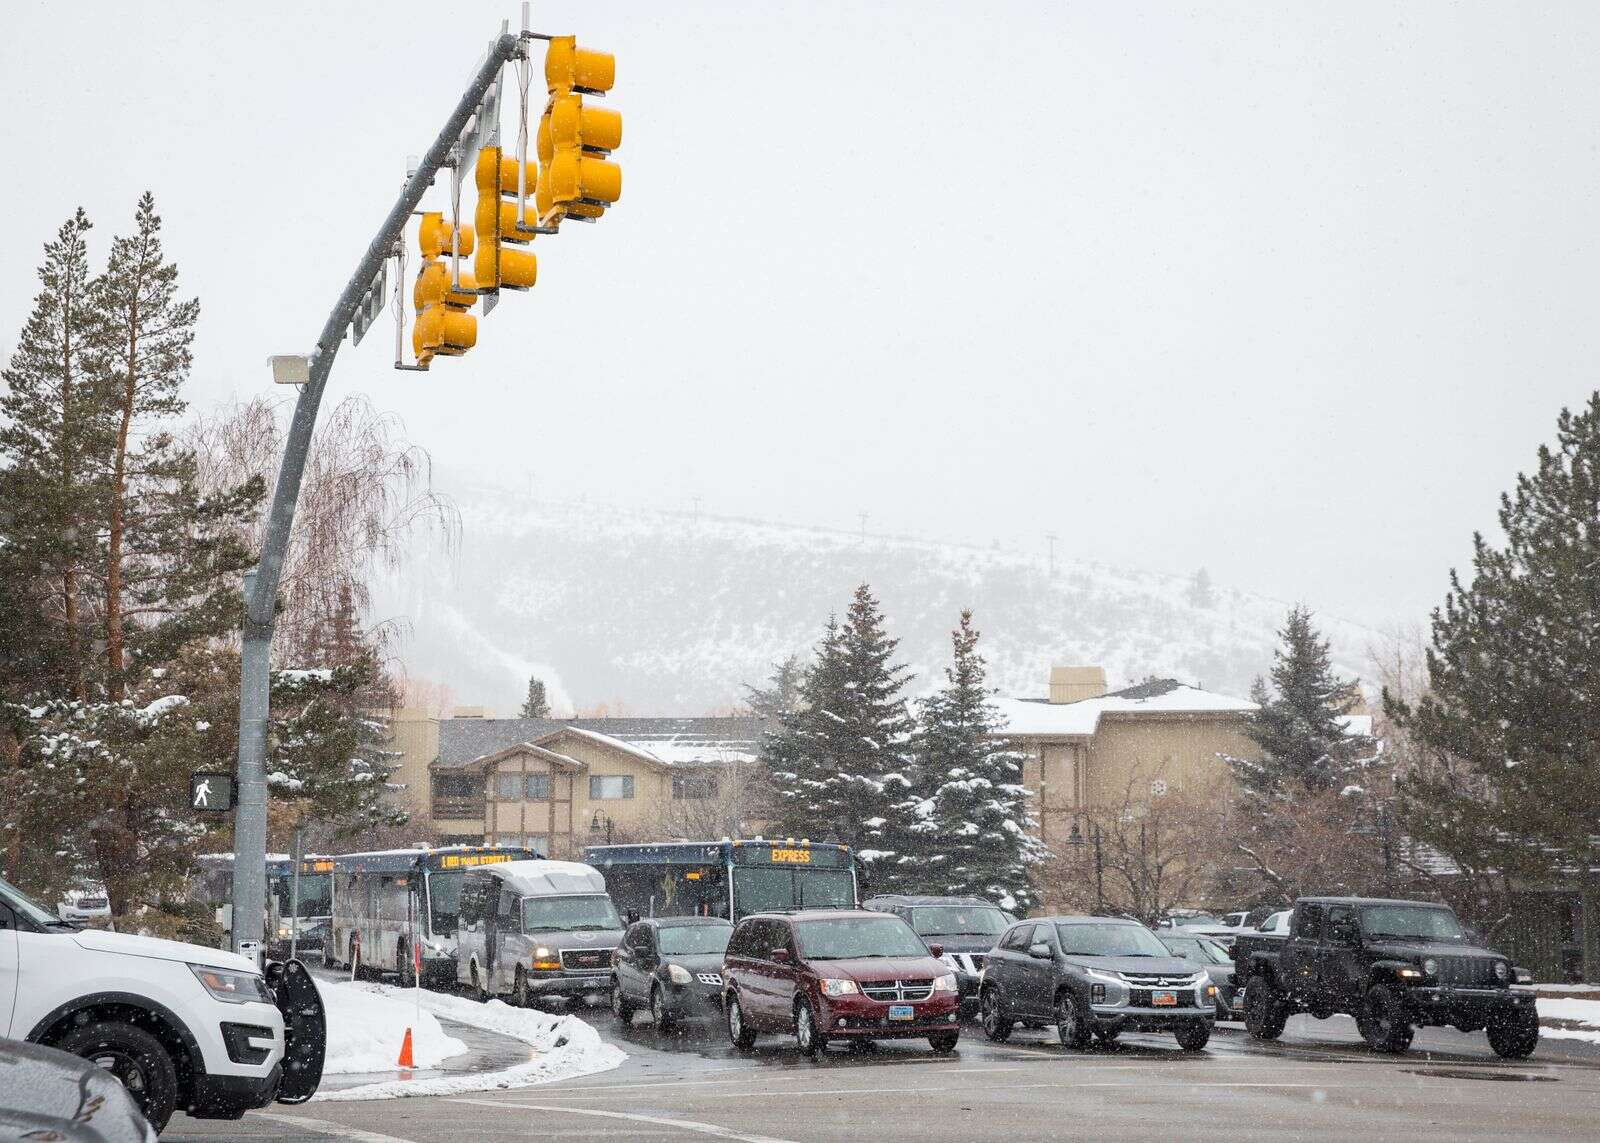 Park City issues report highly critical of Provo developer's PCMR transportation concept